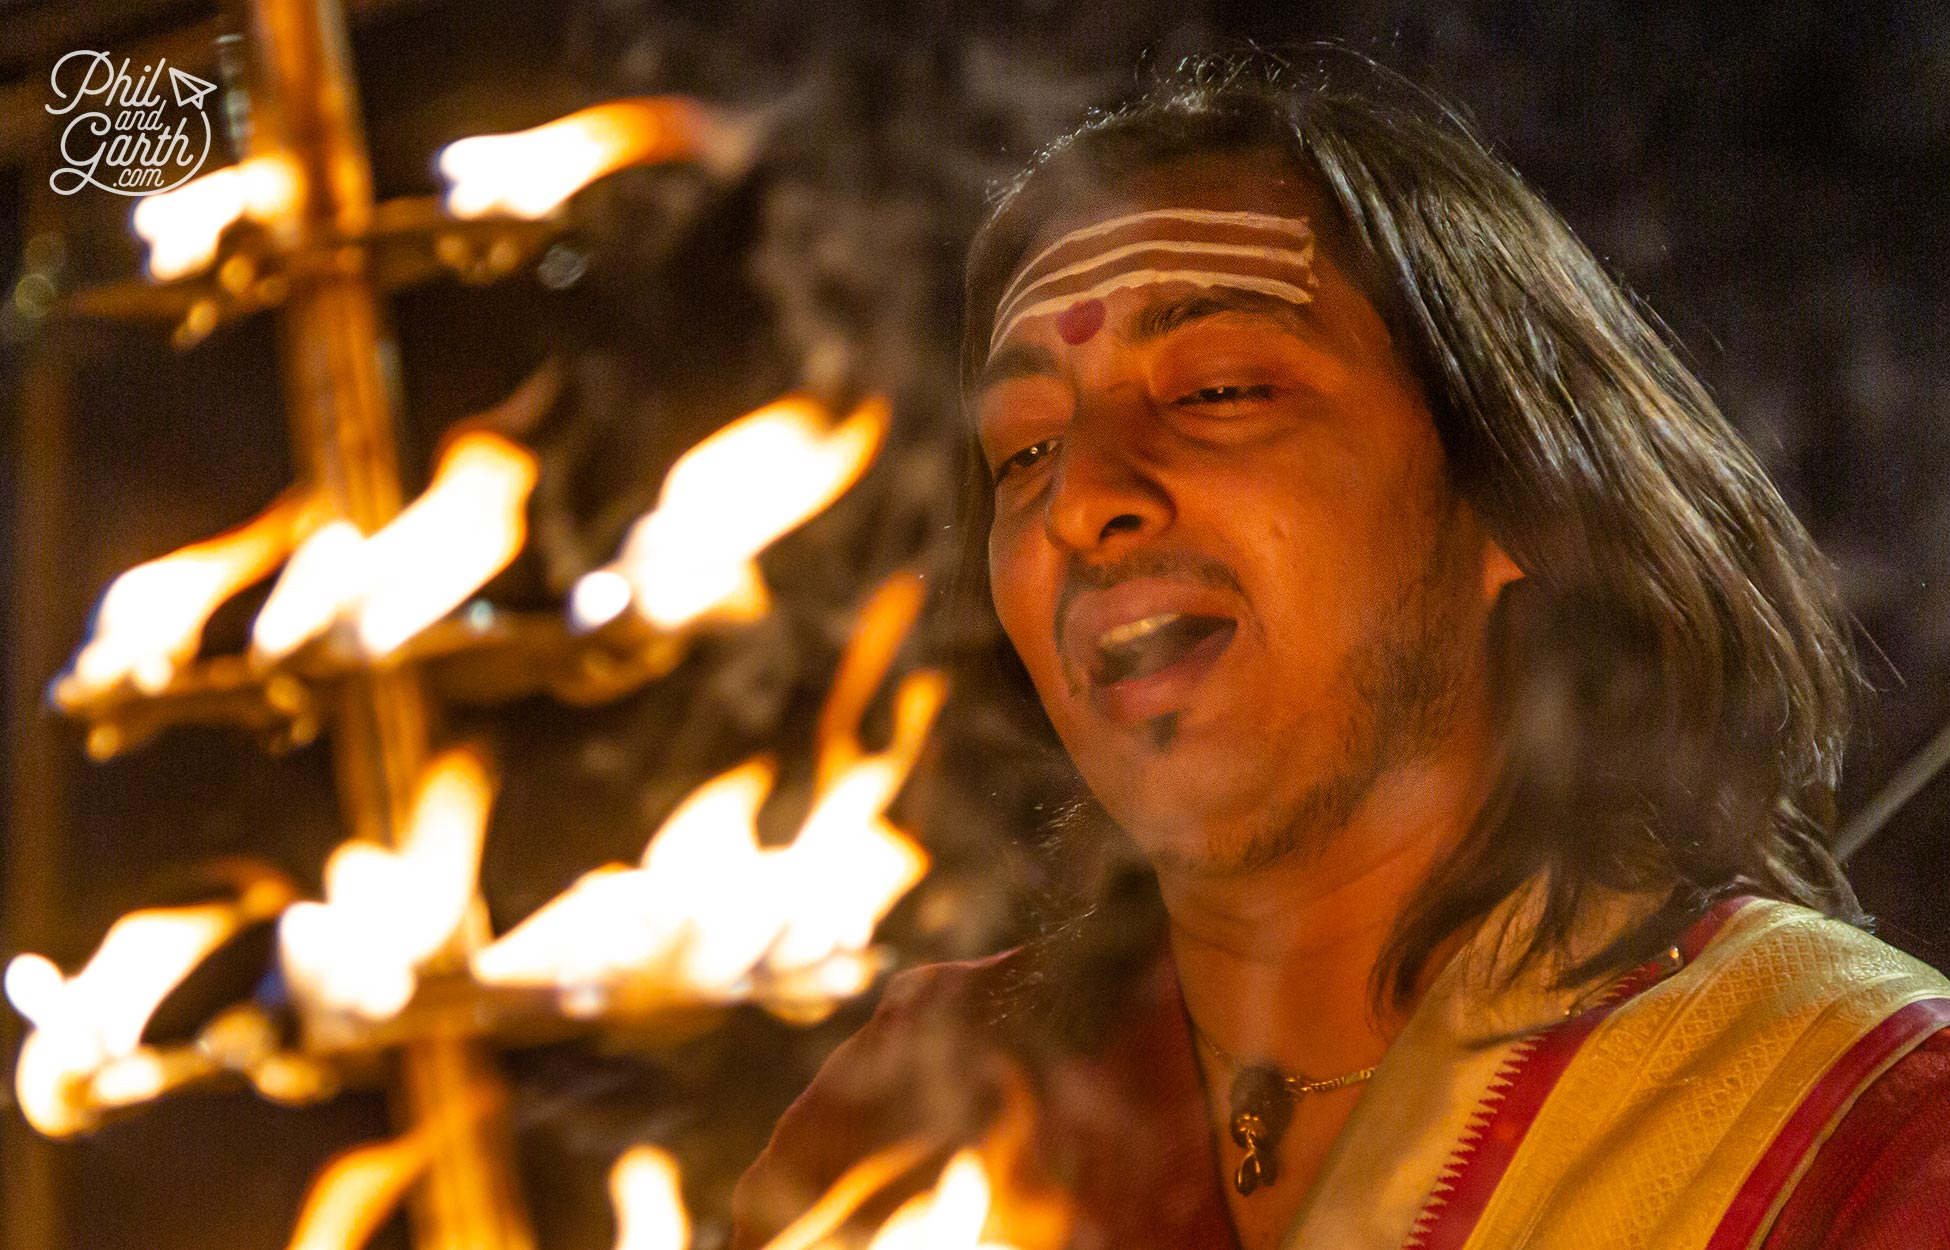 The evening Ganga Aarti ceremony lasts around 45 minutes and is a must see cultural experience of Varanasi